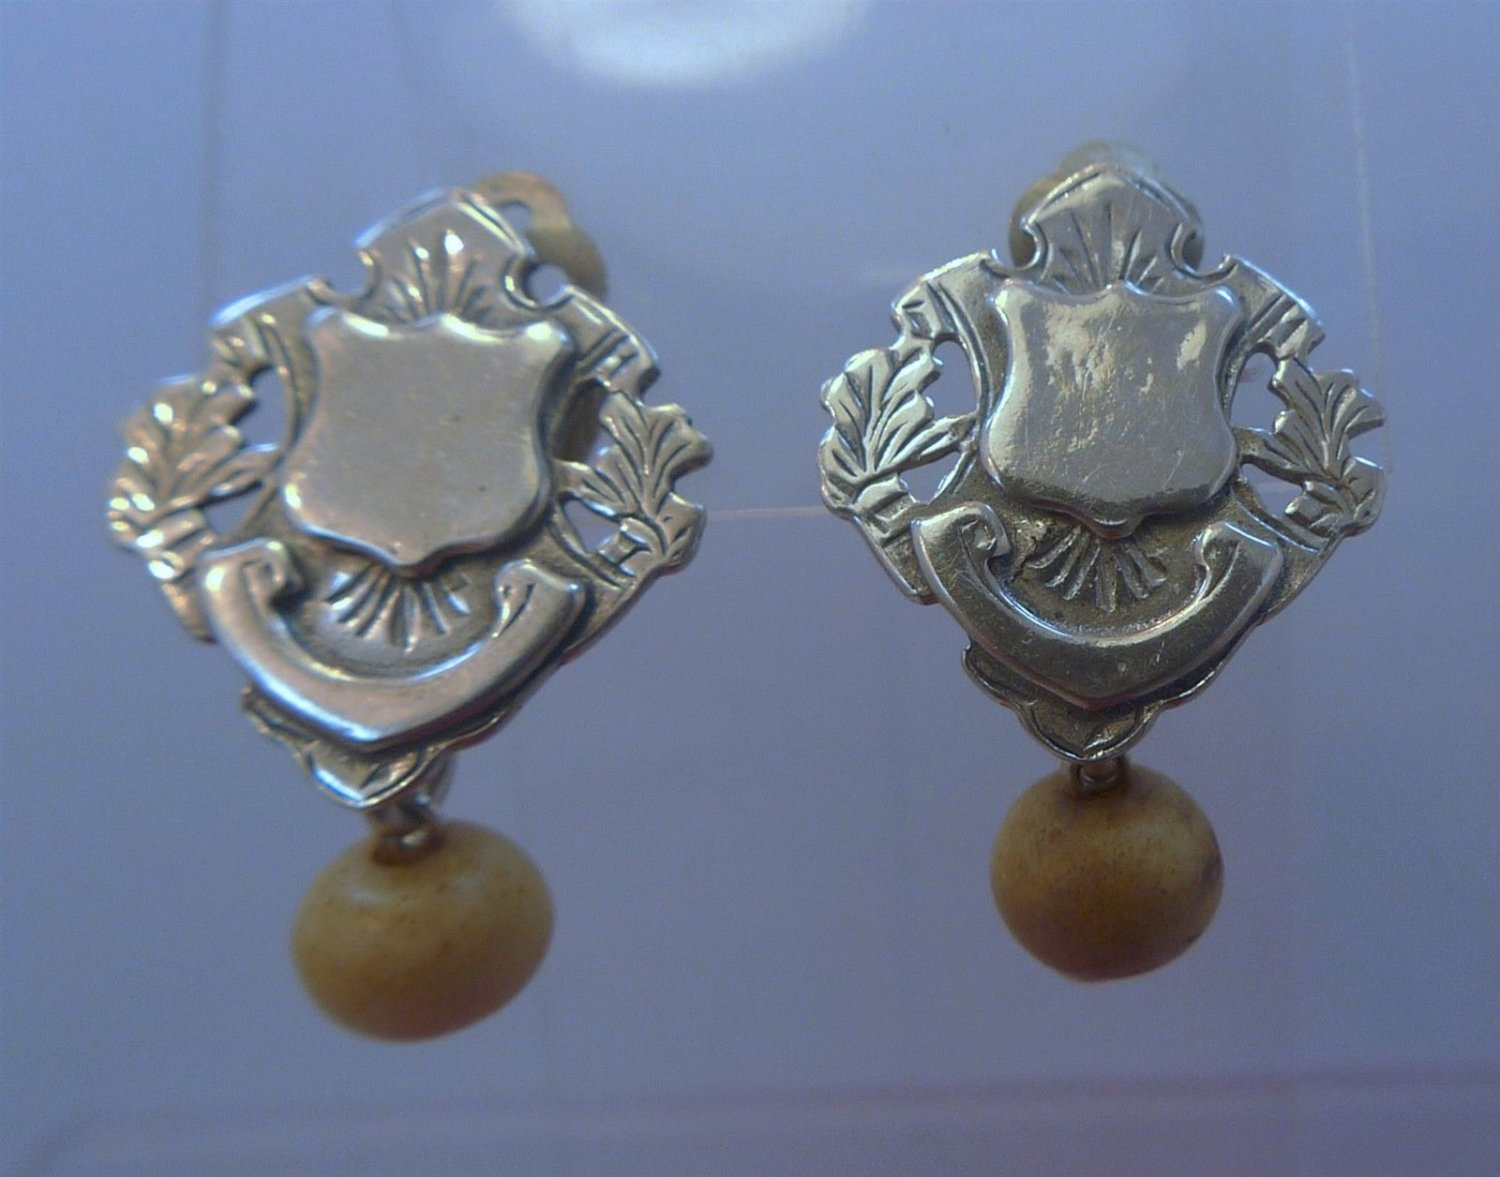 Clip Earrings : Vintage Hand Made Silver Shield Or Crest Earrings w/ Bead